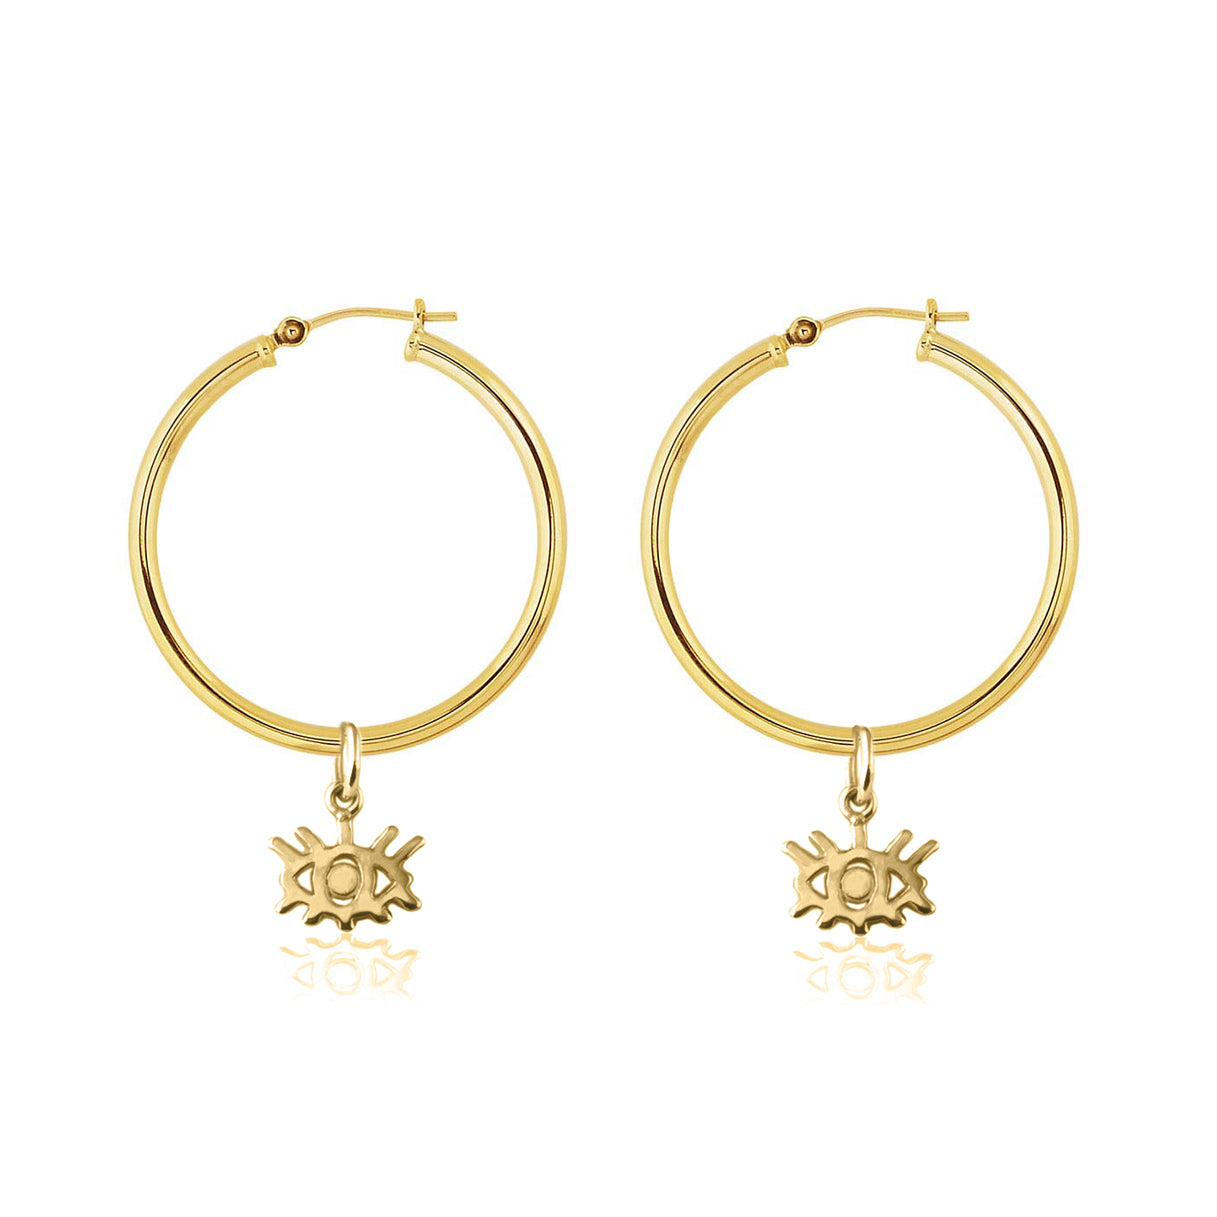 La Luna Rose Gold Tube Hoops with Gold Eye Charms